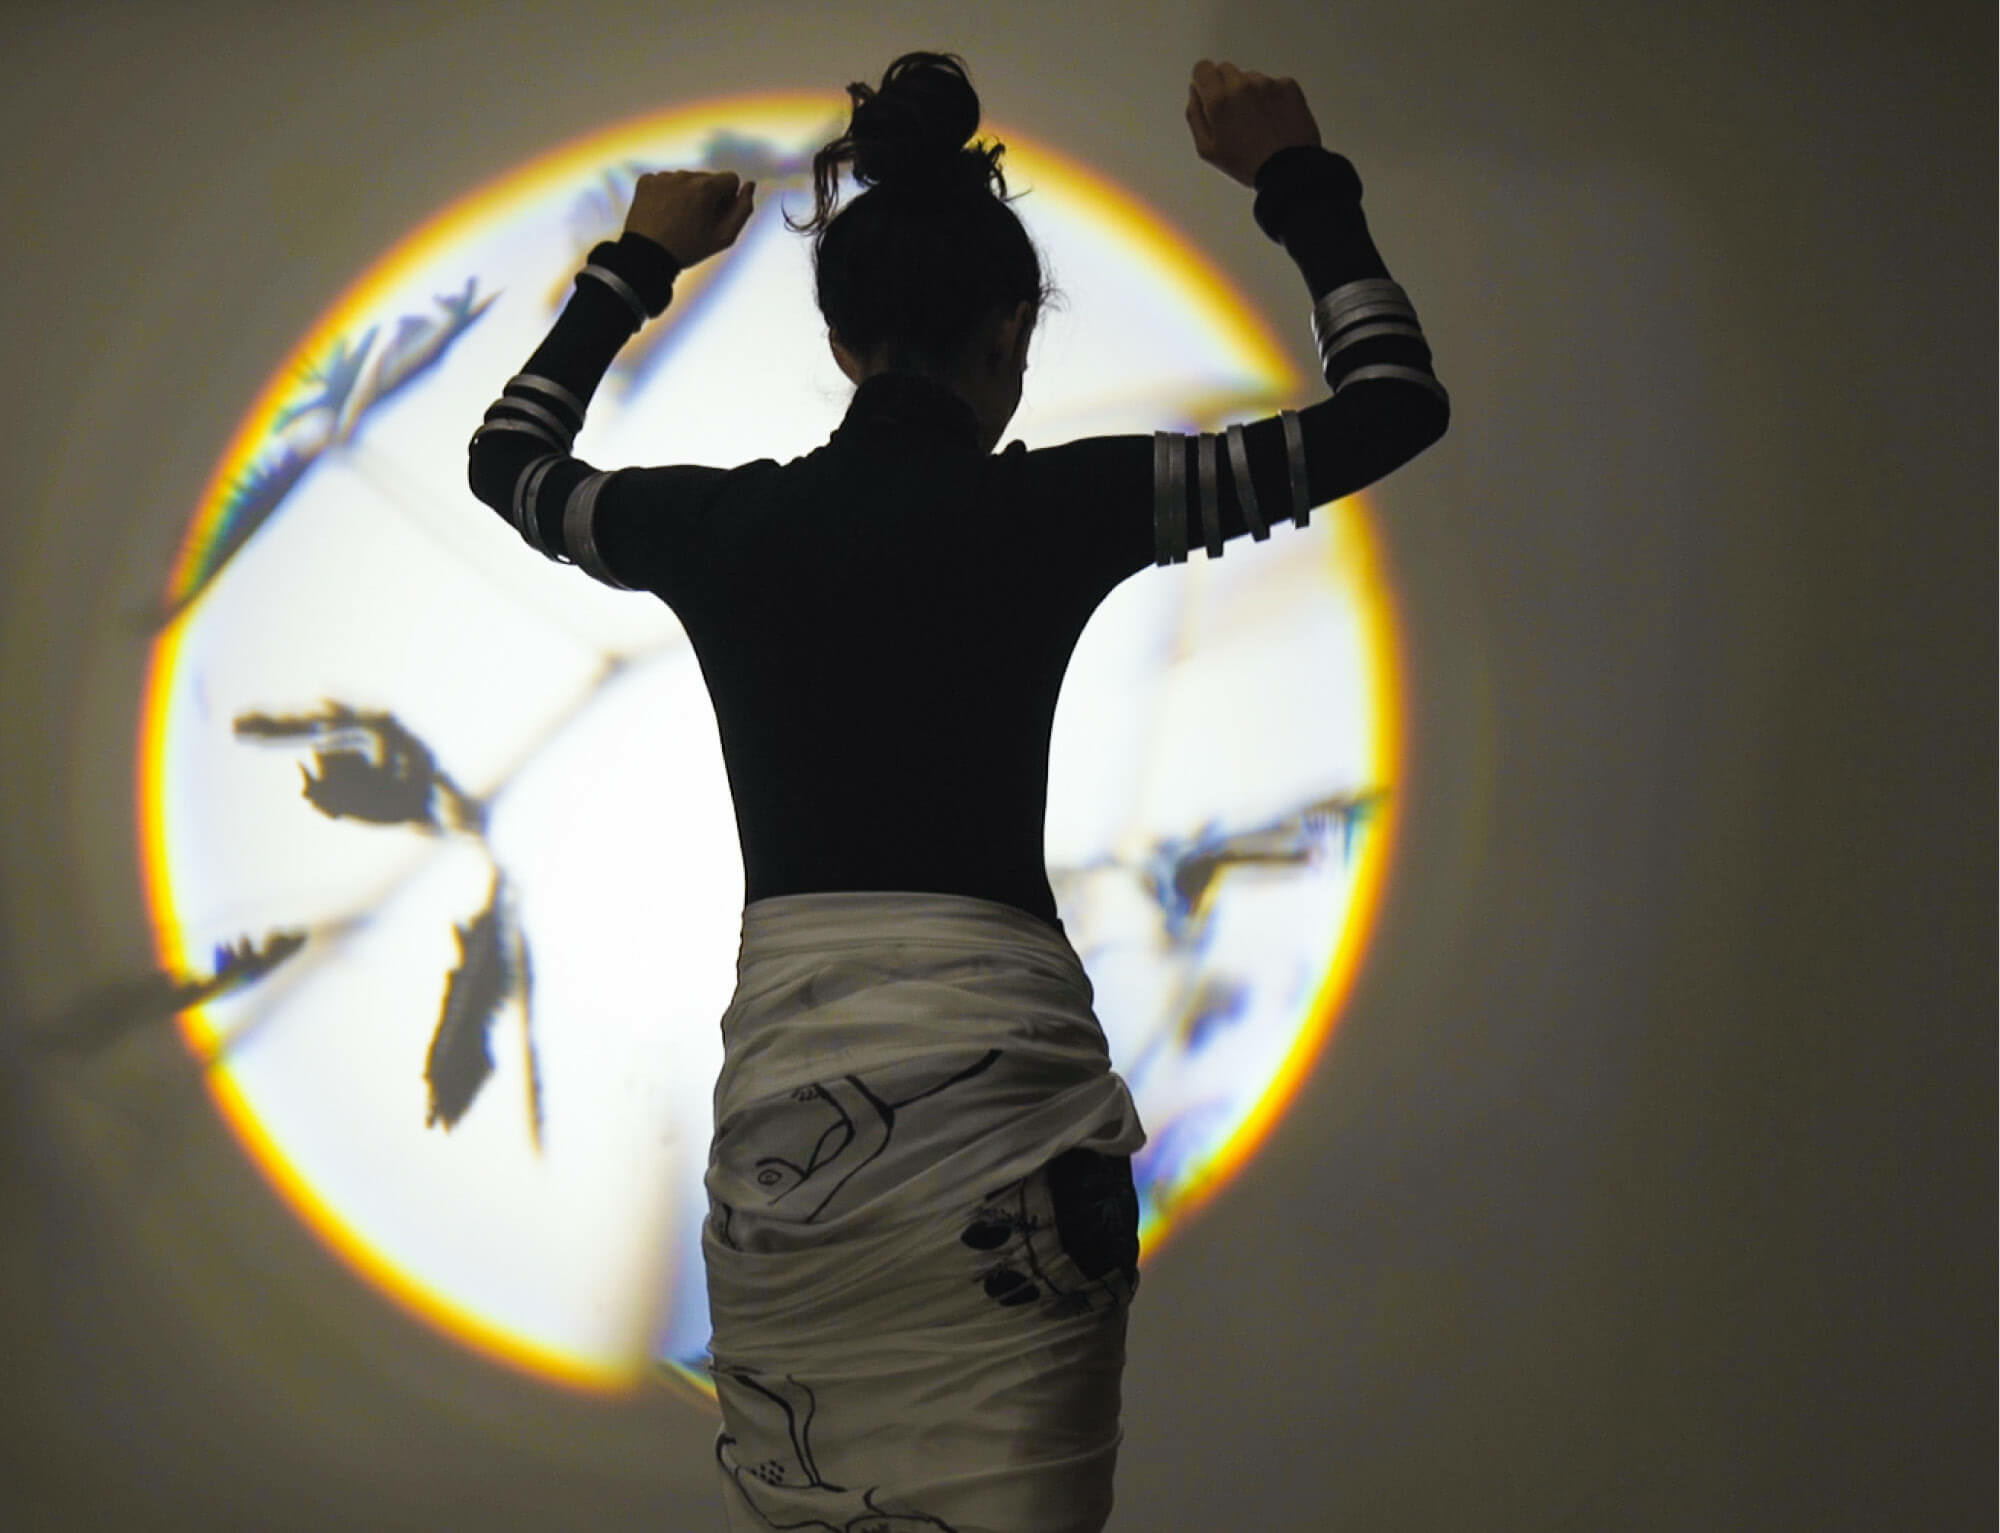 Watch now: Supernature Part I, curated by Daria Khan, Mimosa House